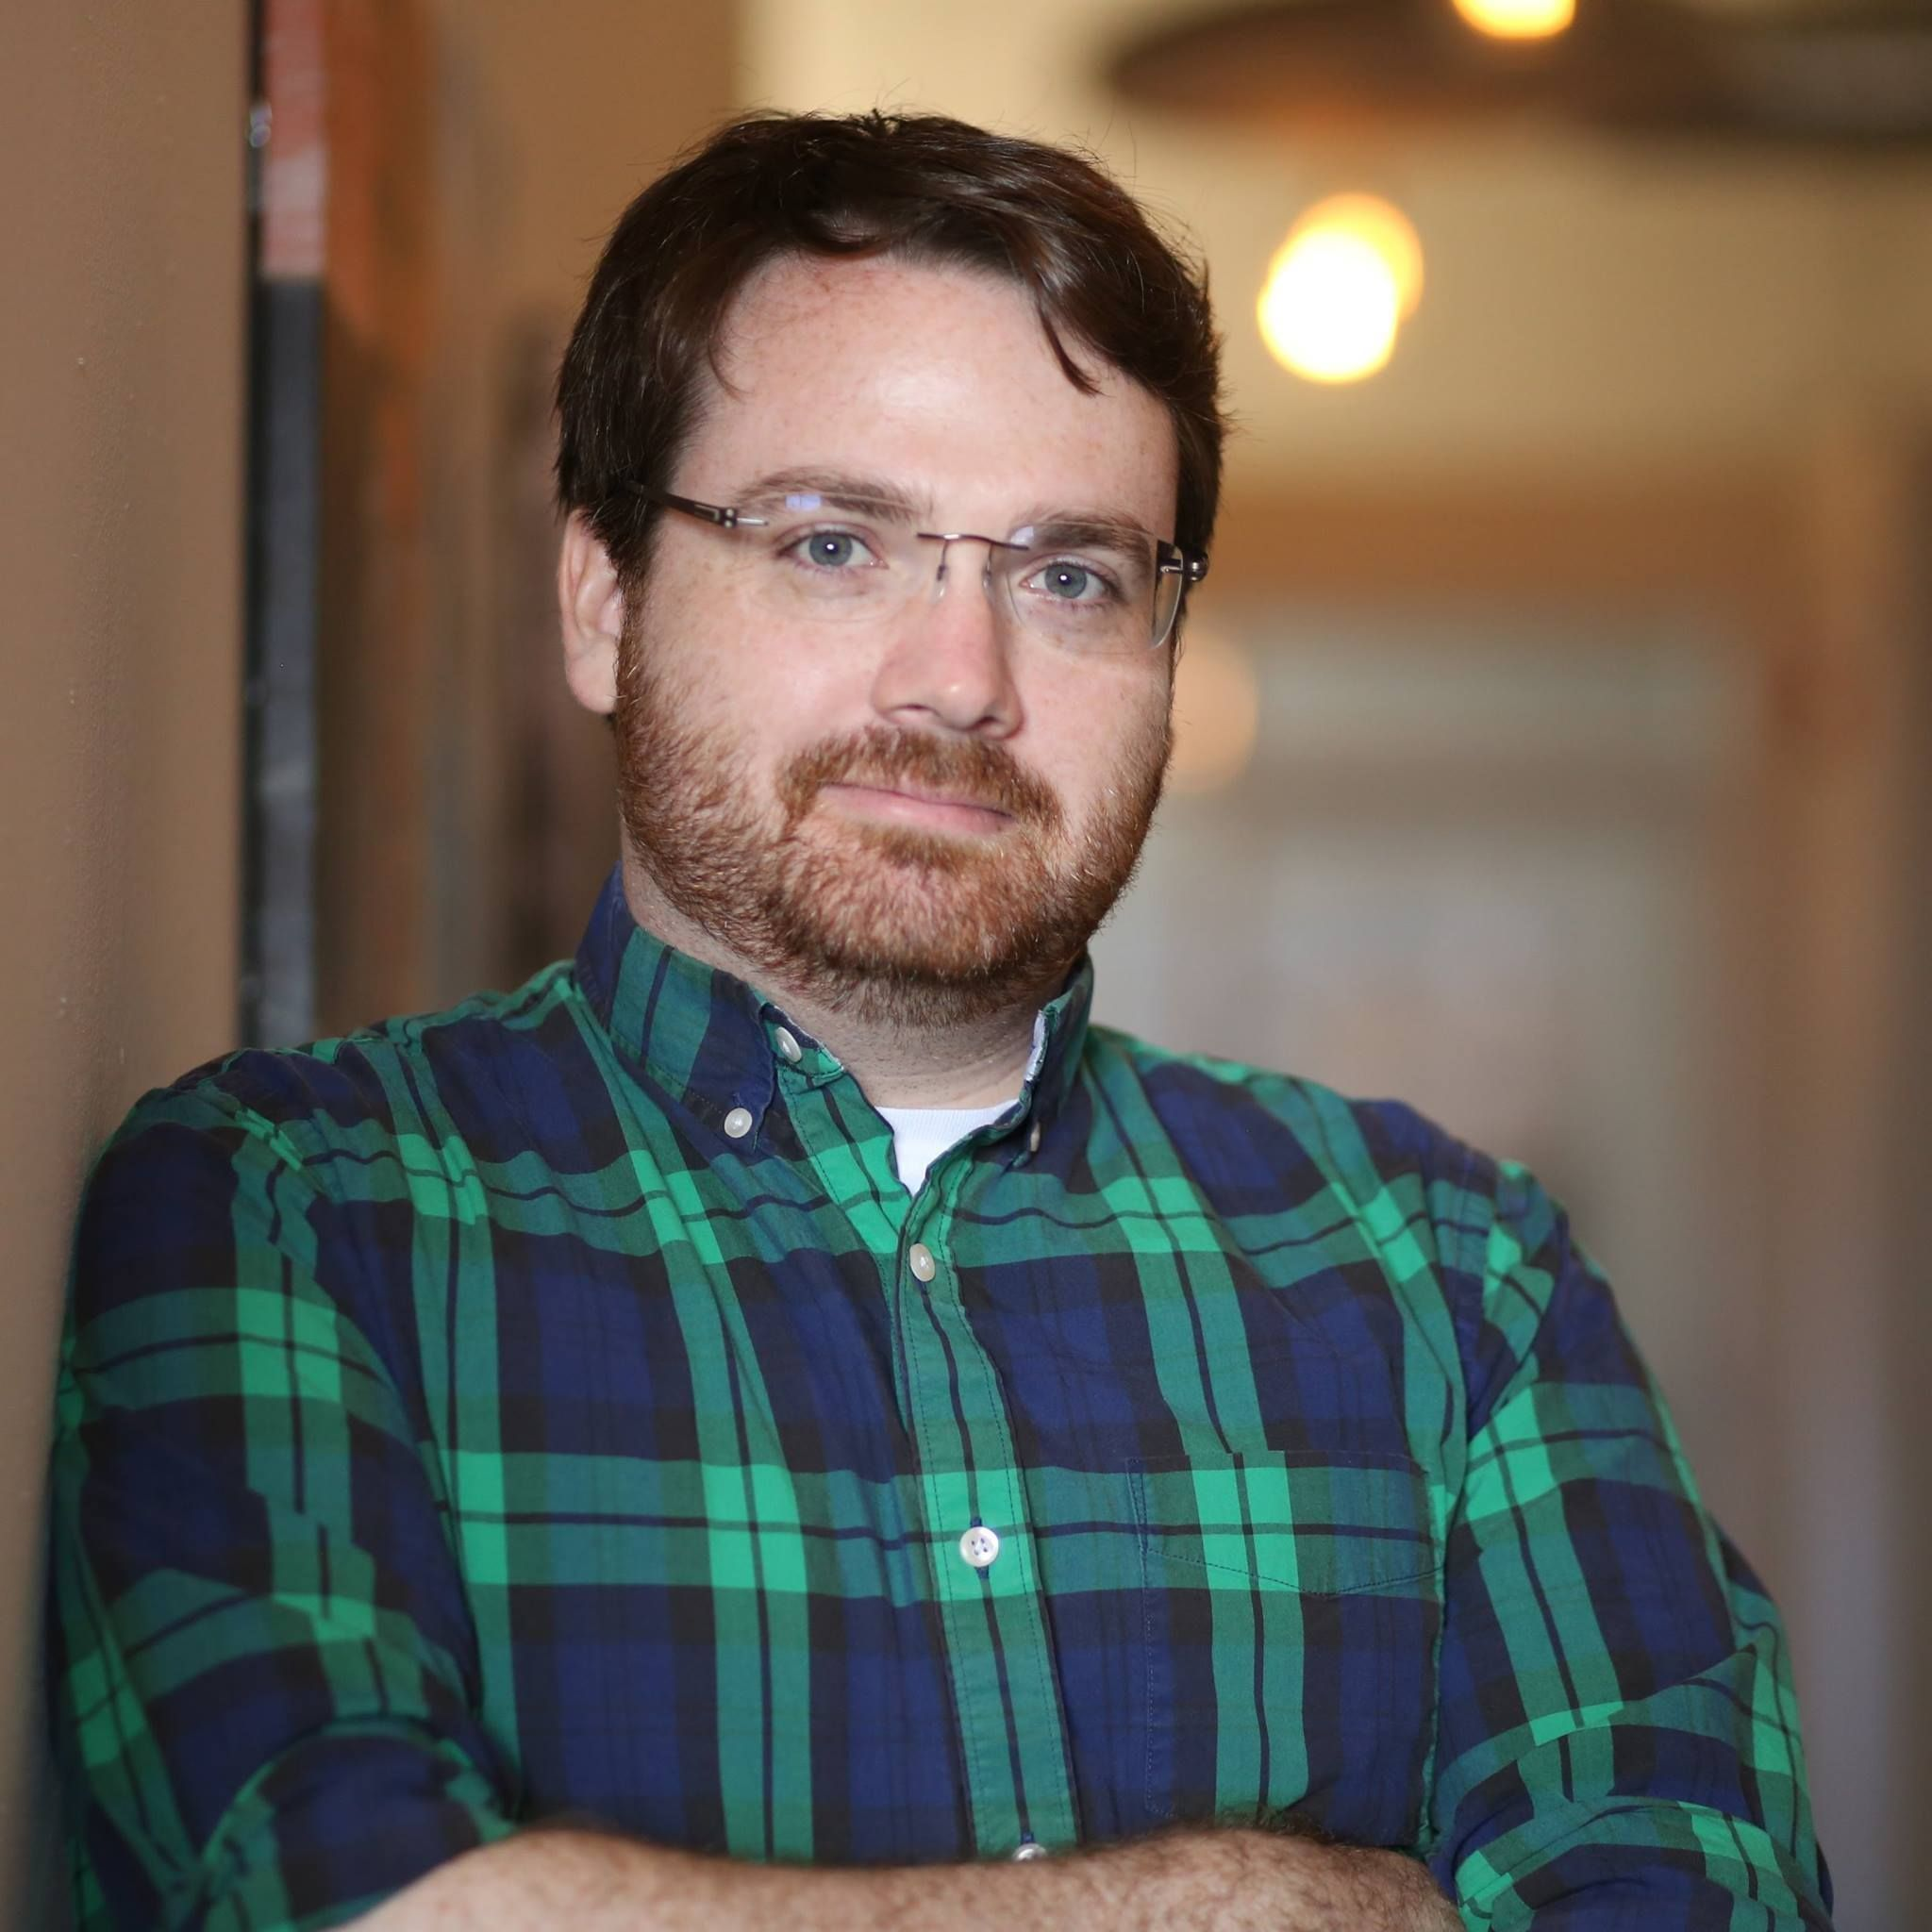 Dan Moore - Dan is Vaporware's Product Lead, with 10 years of startup product management experience. He guides client product management, design, and development through the lean startup process, validating ideas with users and metrics.